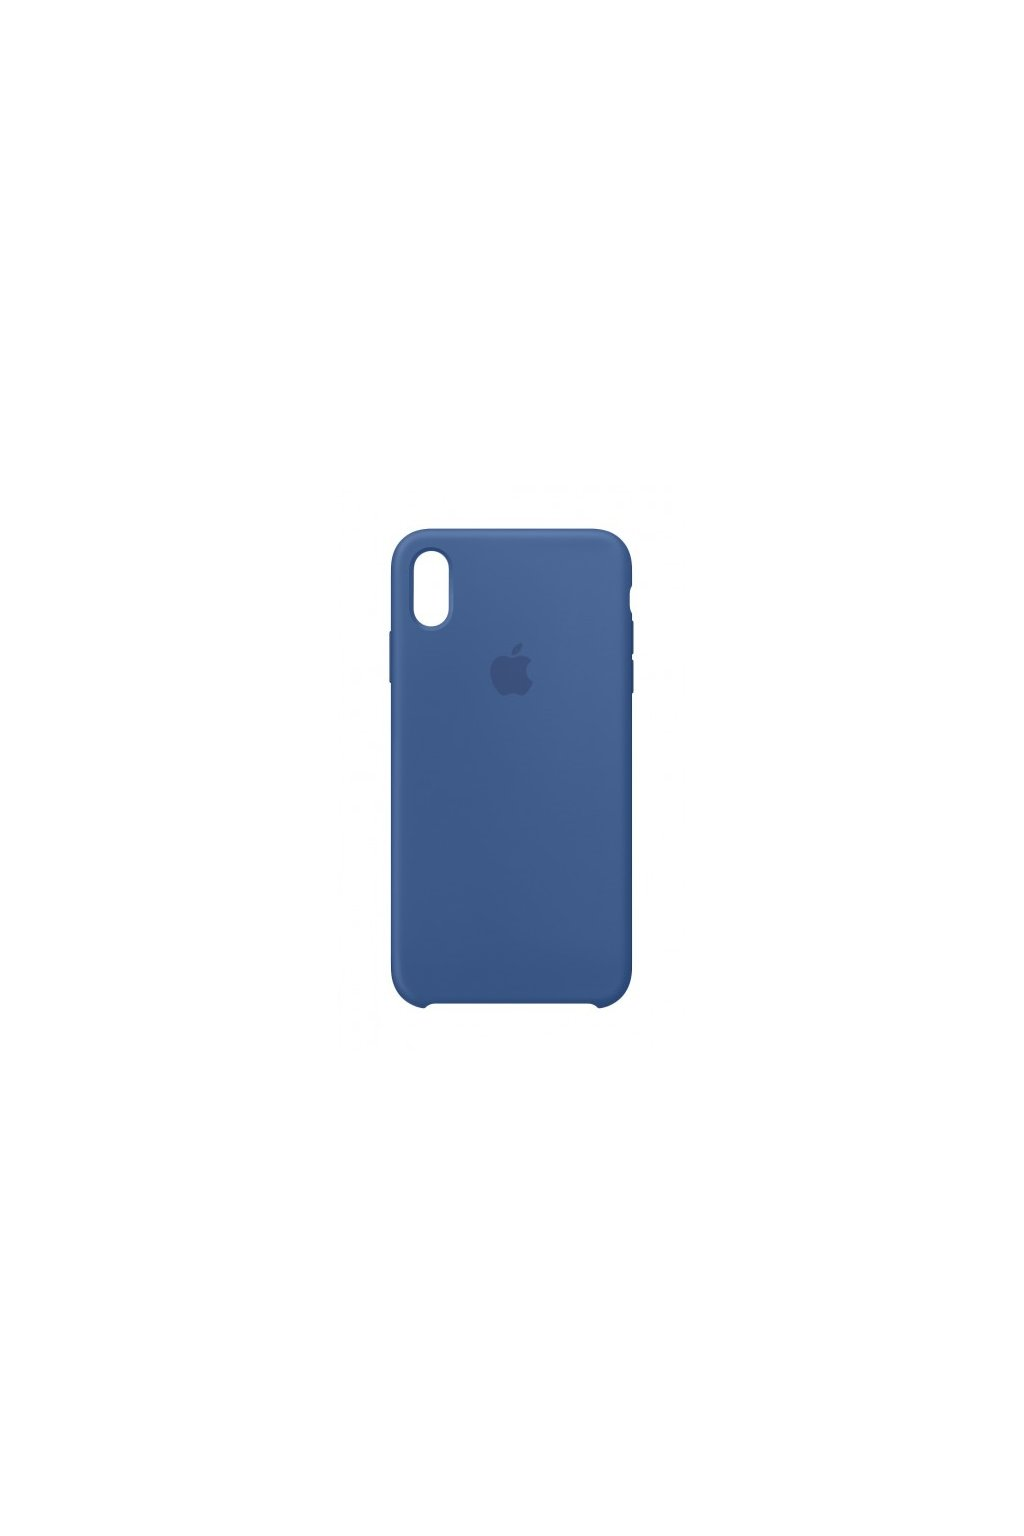 2168 iphone xs max originalni apple kryt delft blue